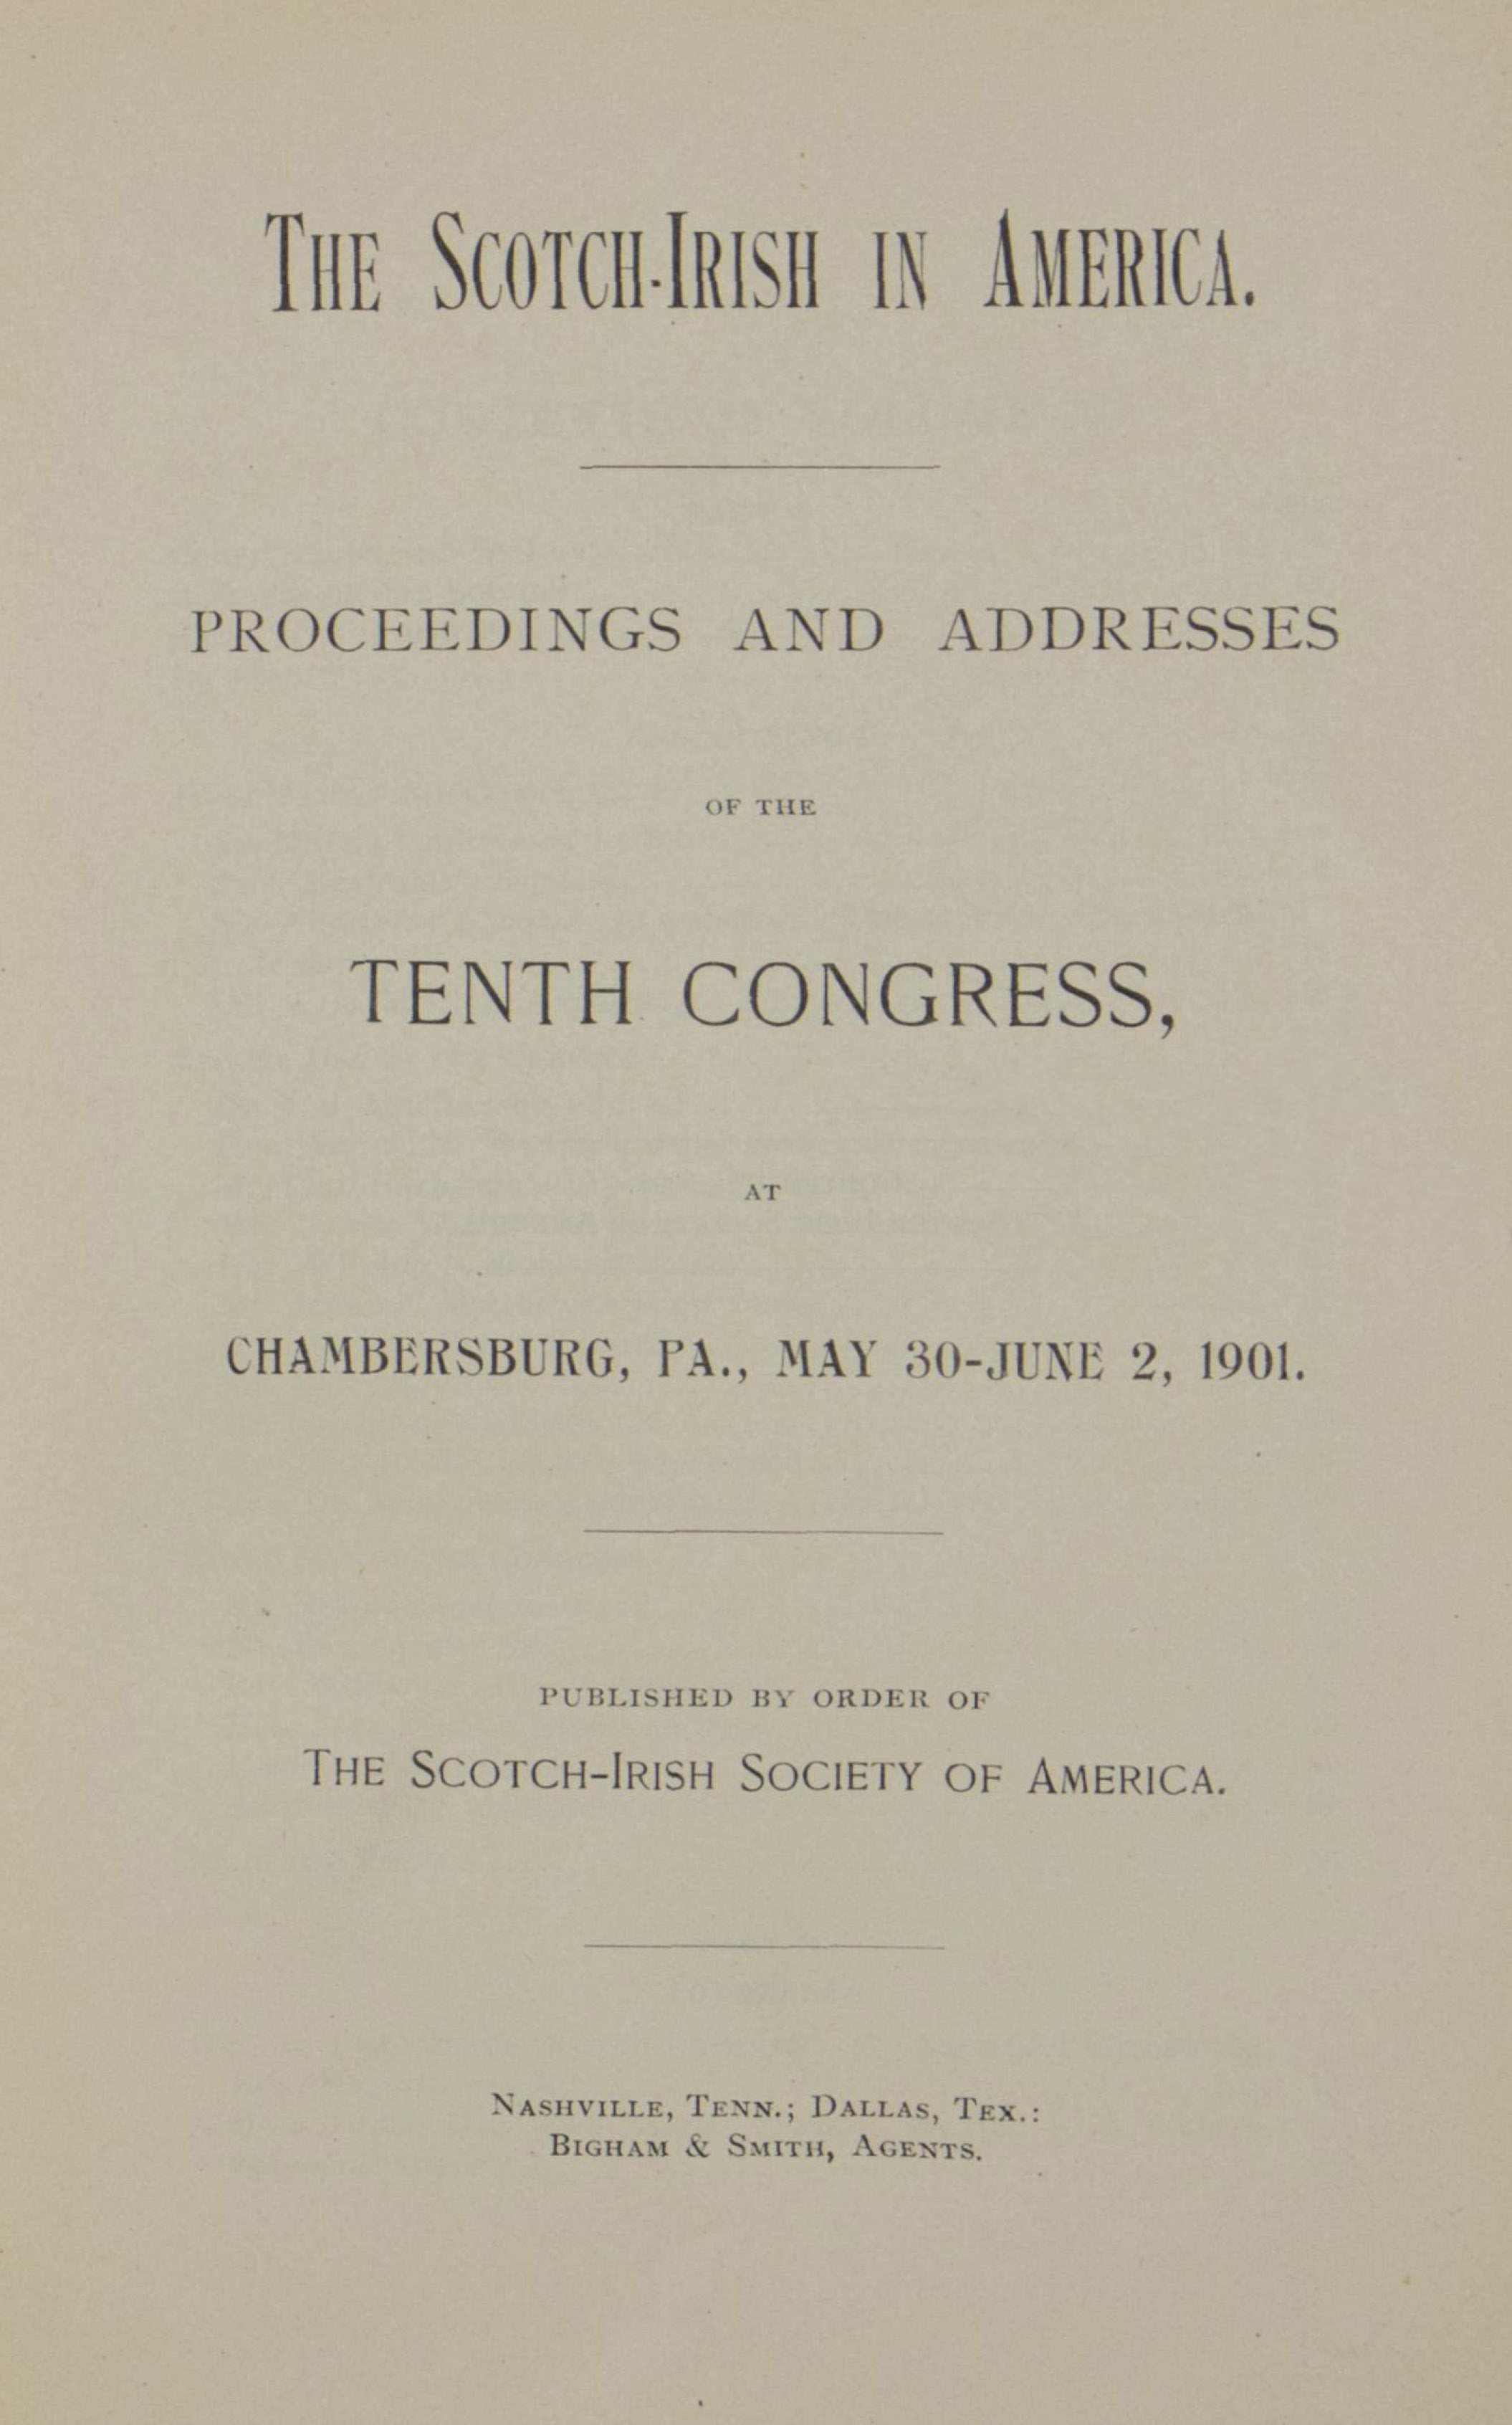 photo of The Scotch-Irish in America, Proceedings and Addresses of the Tenth Congress May - June 1901, 1902